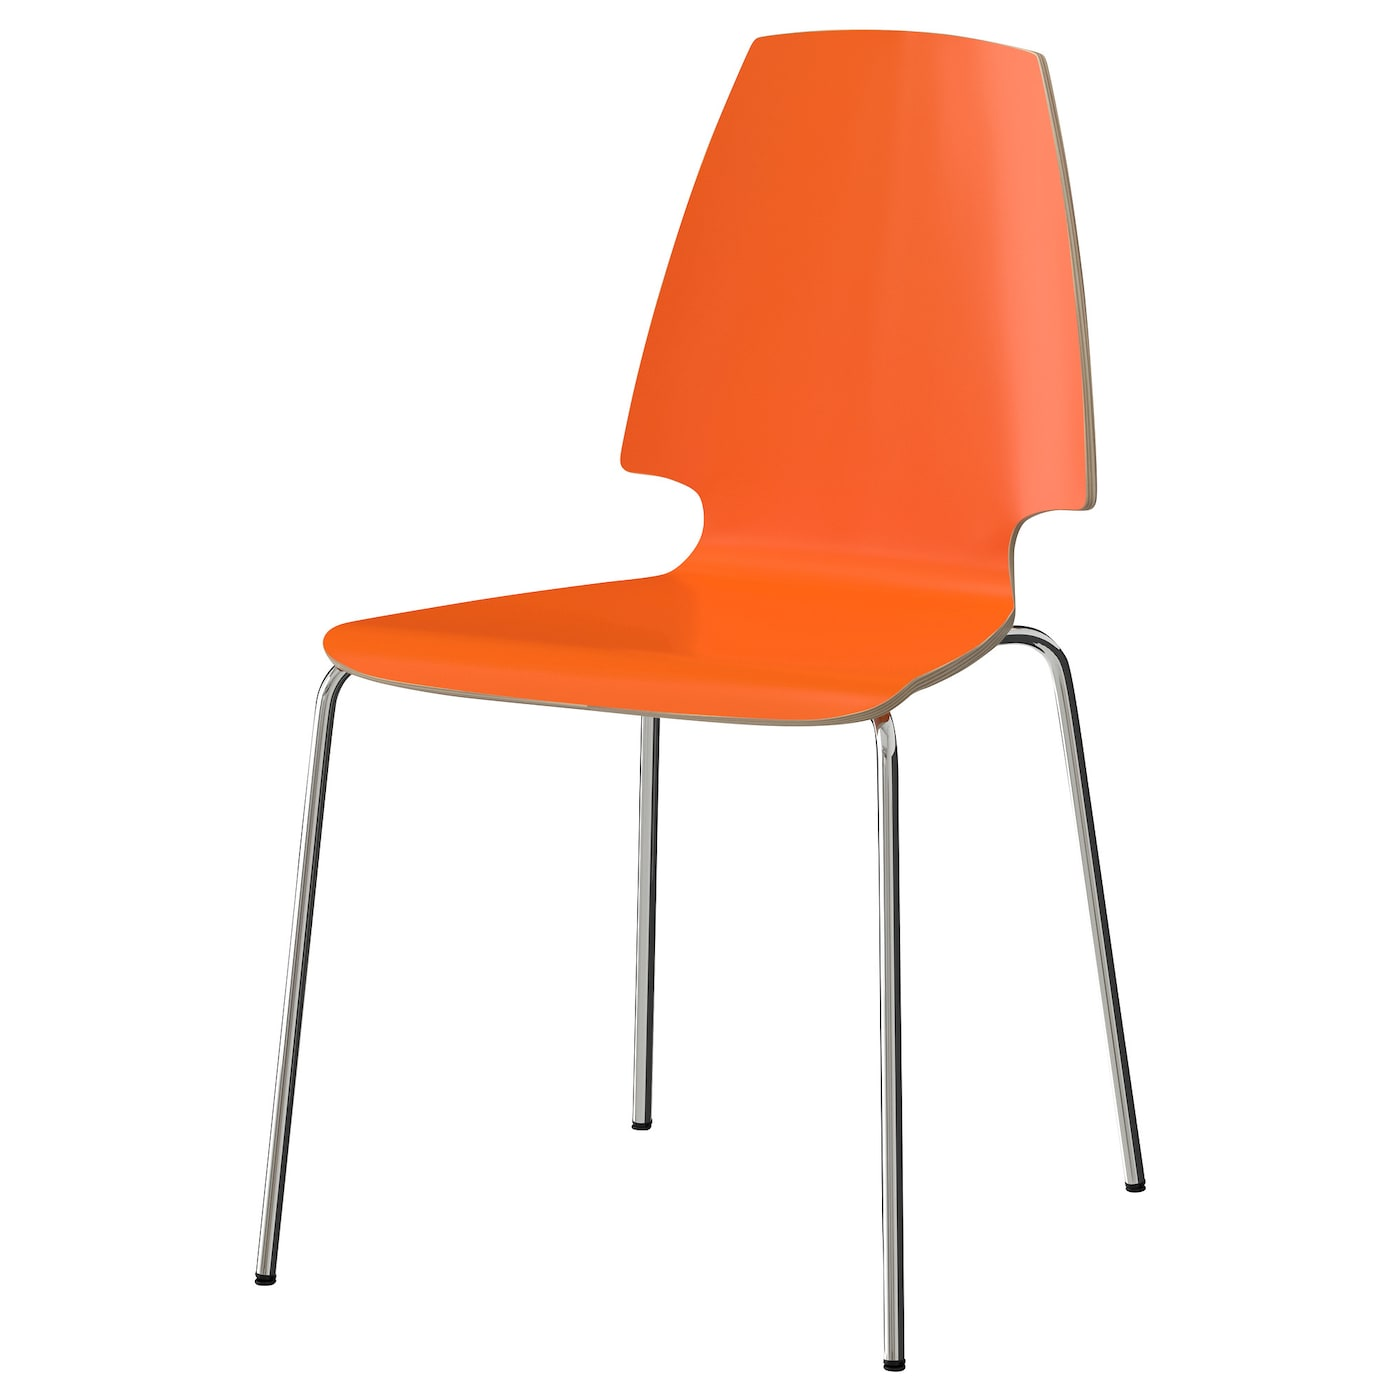 Ordinaire IKEA VILMAR Chair The Chairu0027s Melamine Surface Makes It Durable And Easy To  Keep Clean.